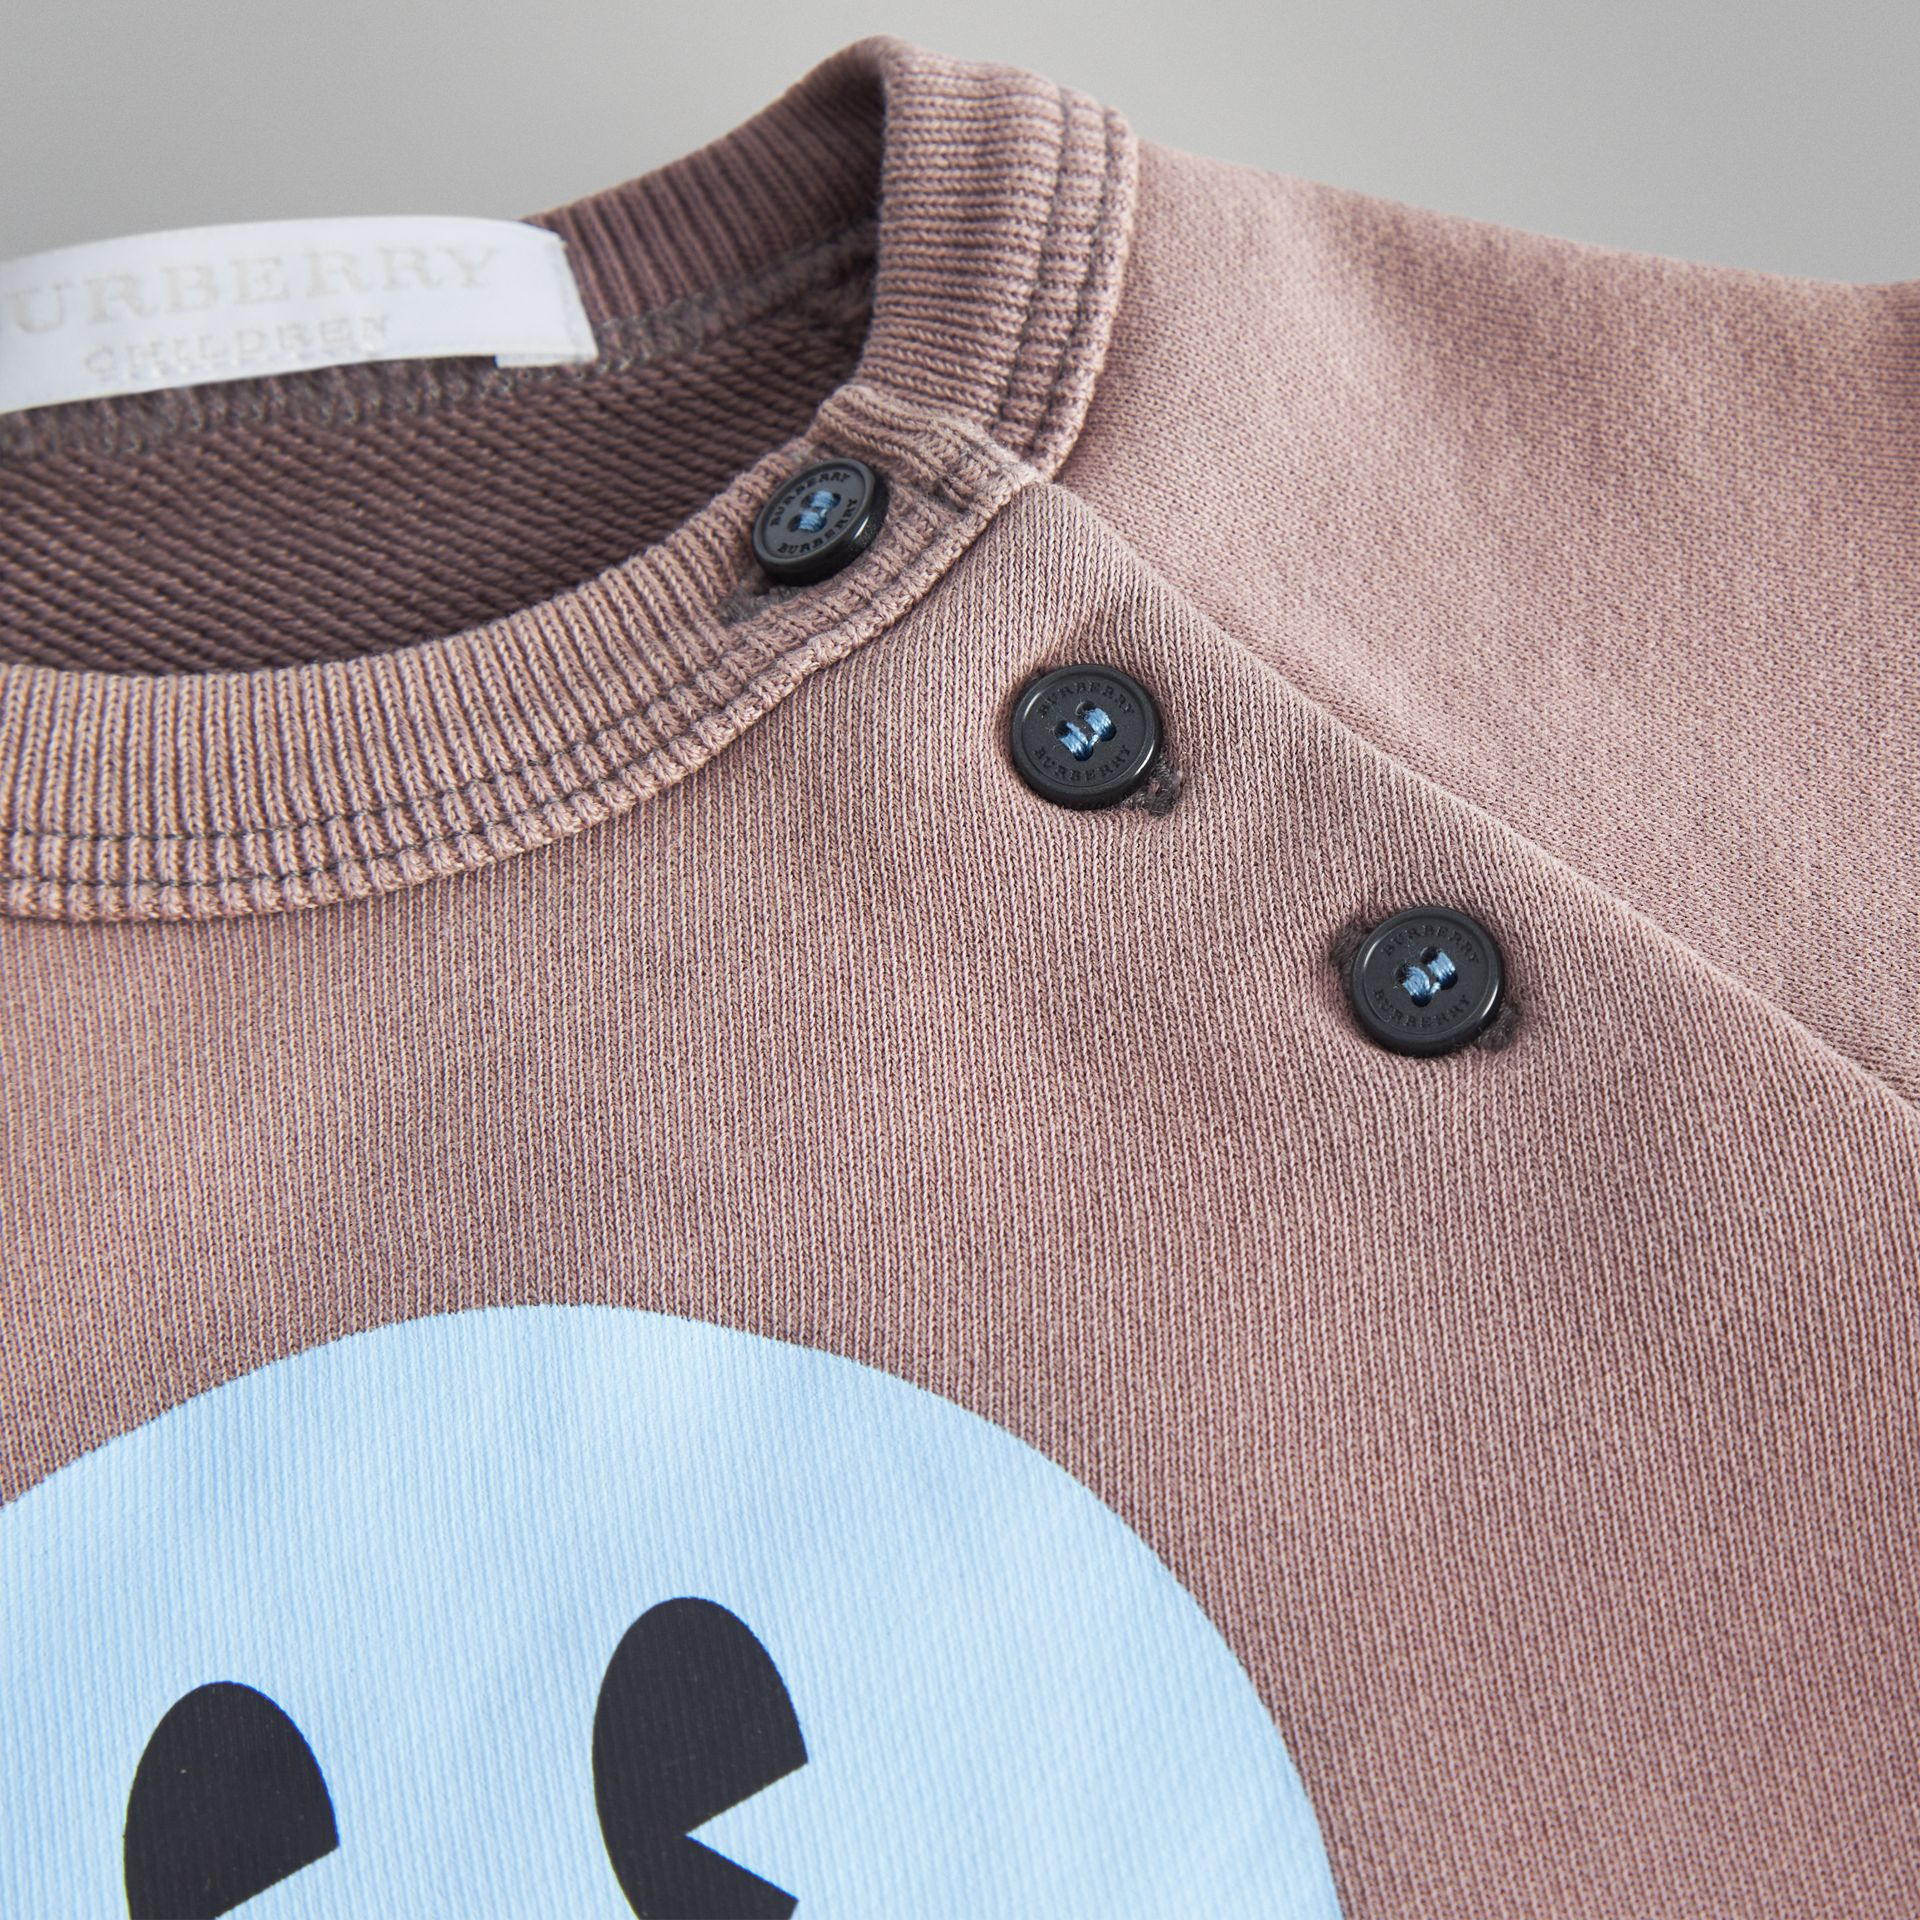 Smiley Face Print Cotton Sweatshirt in Mauve - Children | Burberry - gallery image 1